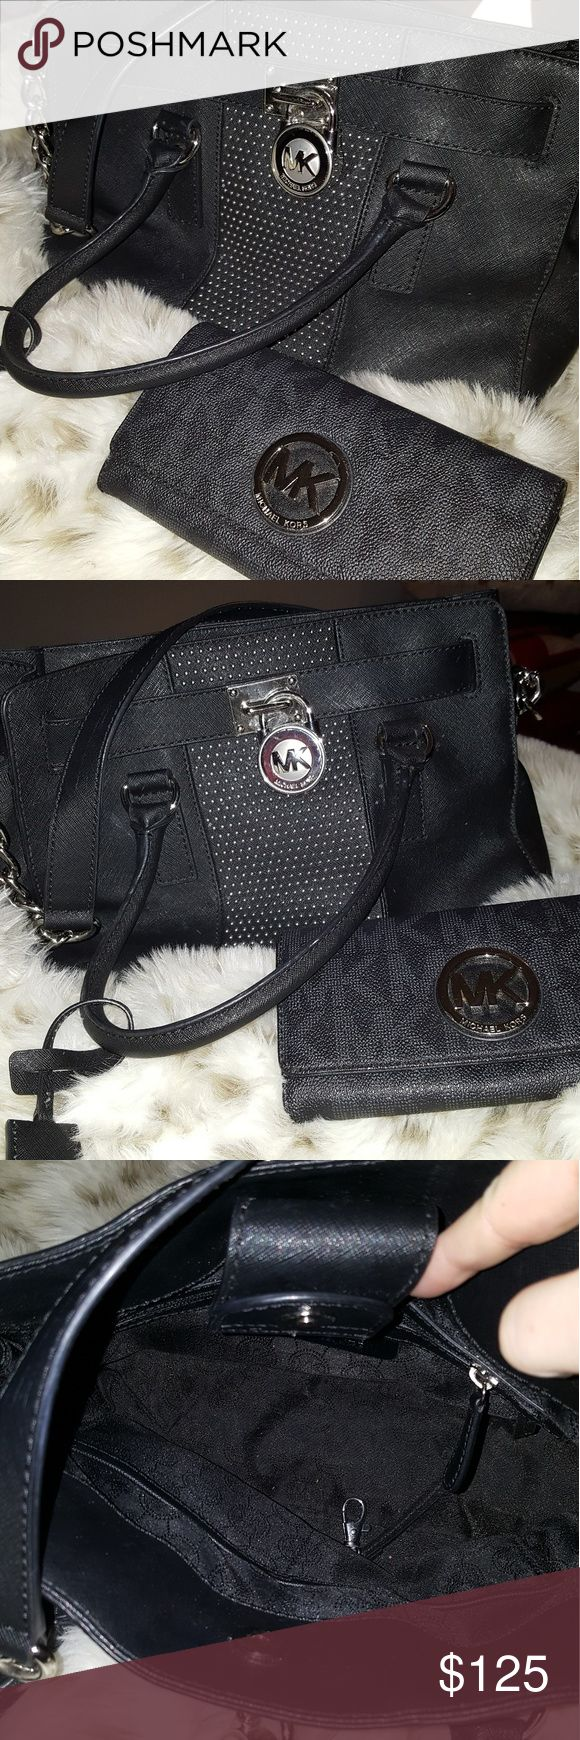 Authentic Michael Kors purse and matching wallet Get in style for the fall with this matching set. Black MK purse with  silver tone chain accent and mk locket. Black 2 tone mk wallet with large emblem on the front Don't miss out on this great deal.... Michael Kors Collection Bags Shoulder Bags